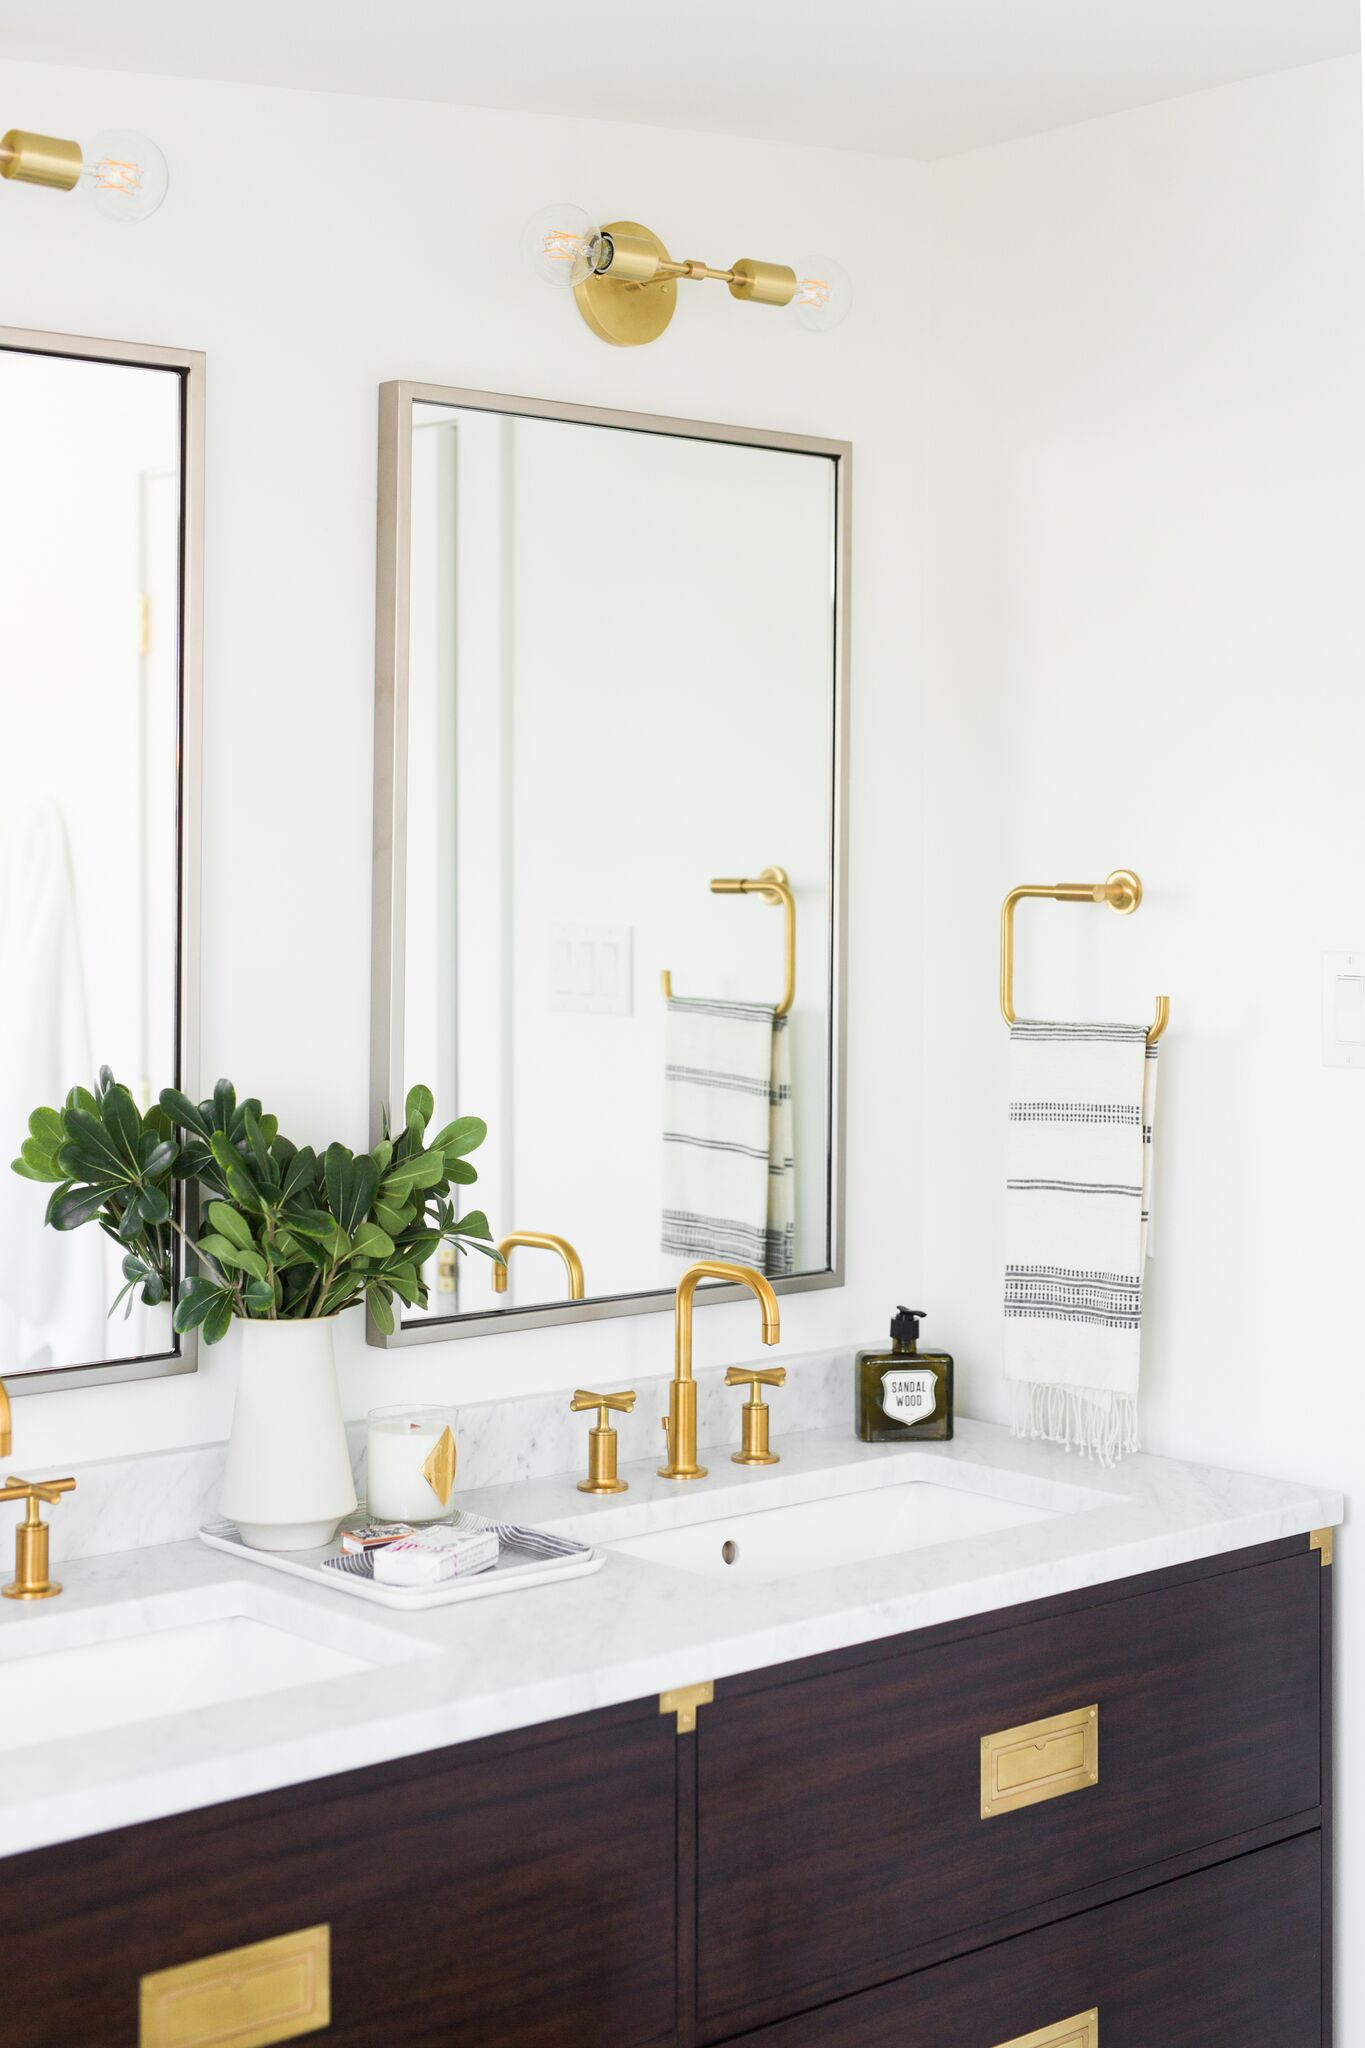 Decorative details atop the white vanity